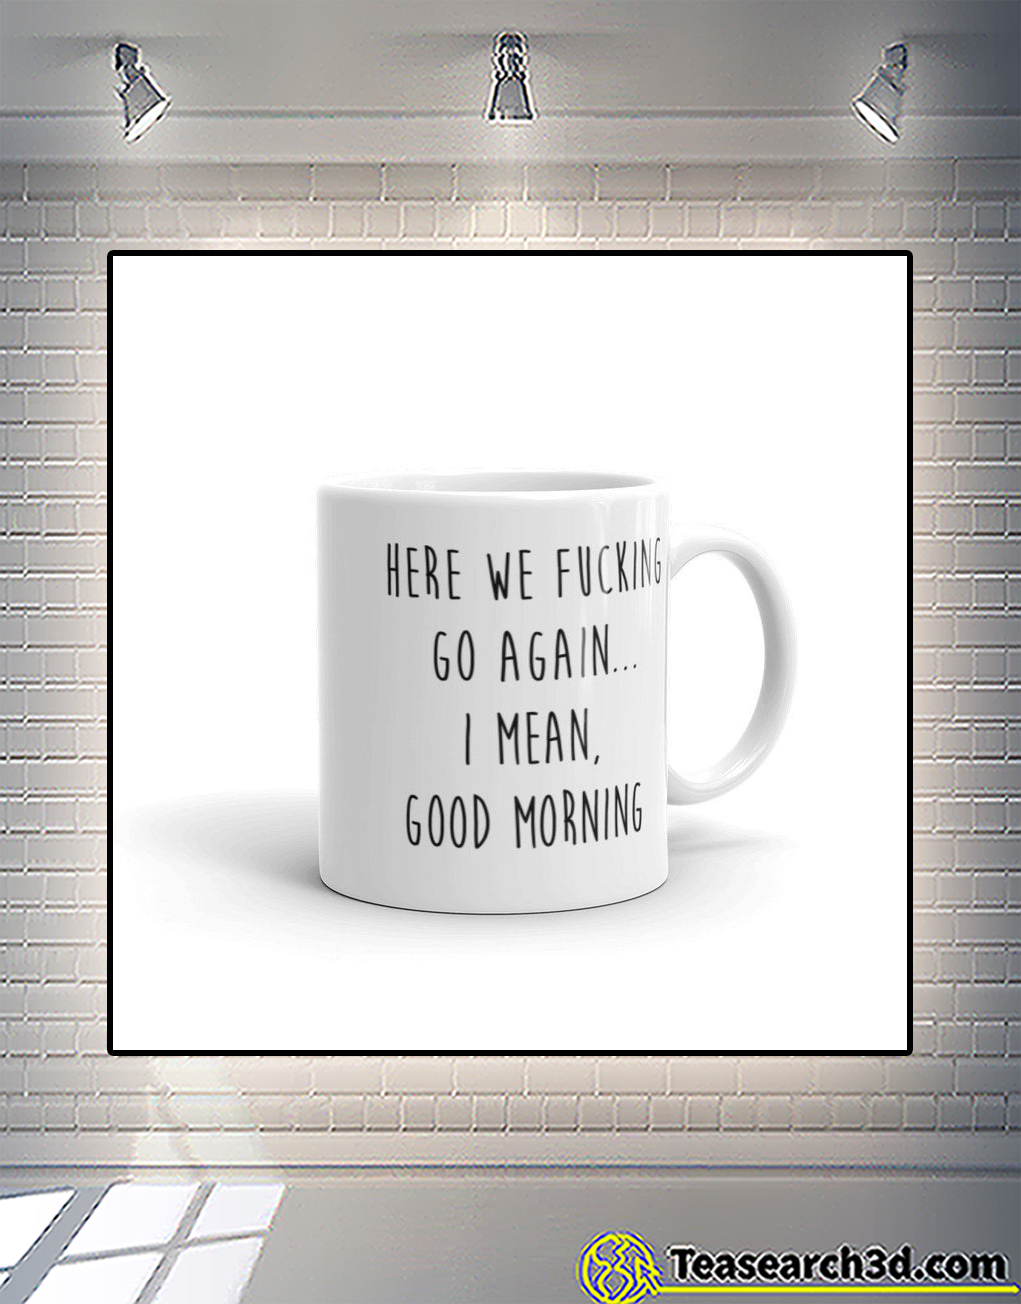 Here we fucking go again I mean good morning mug front